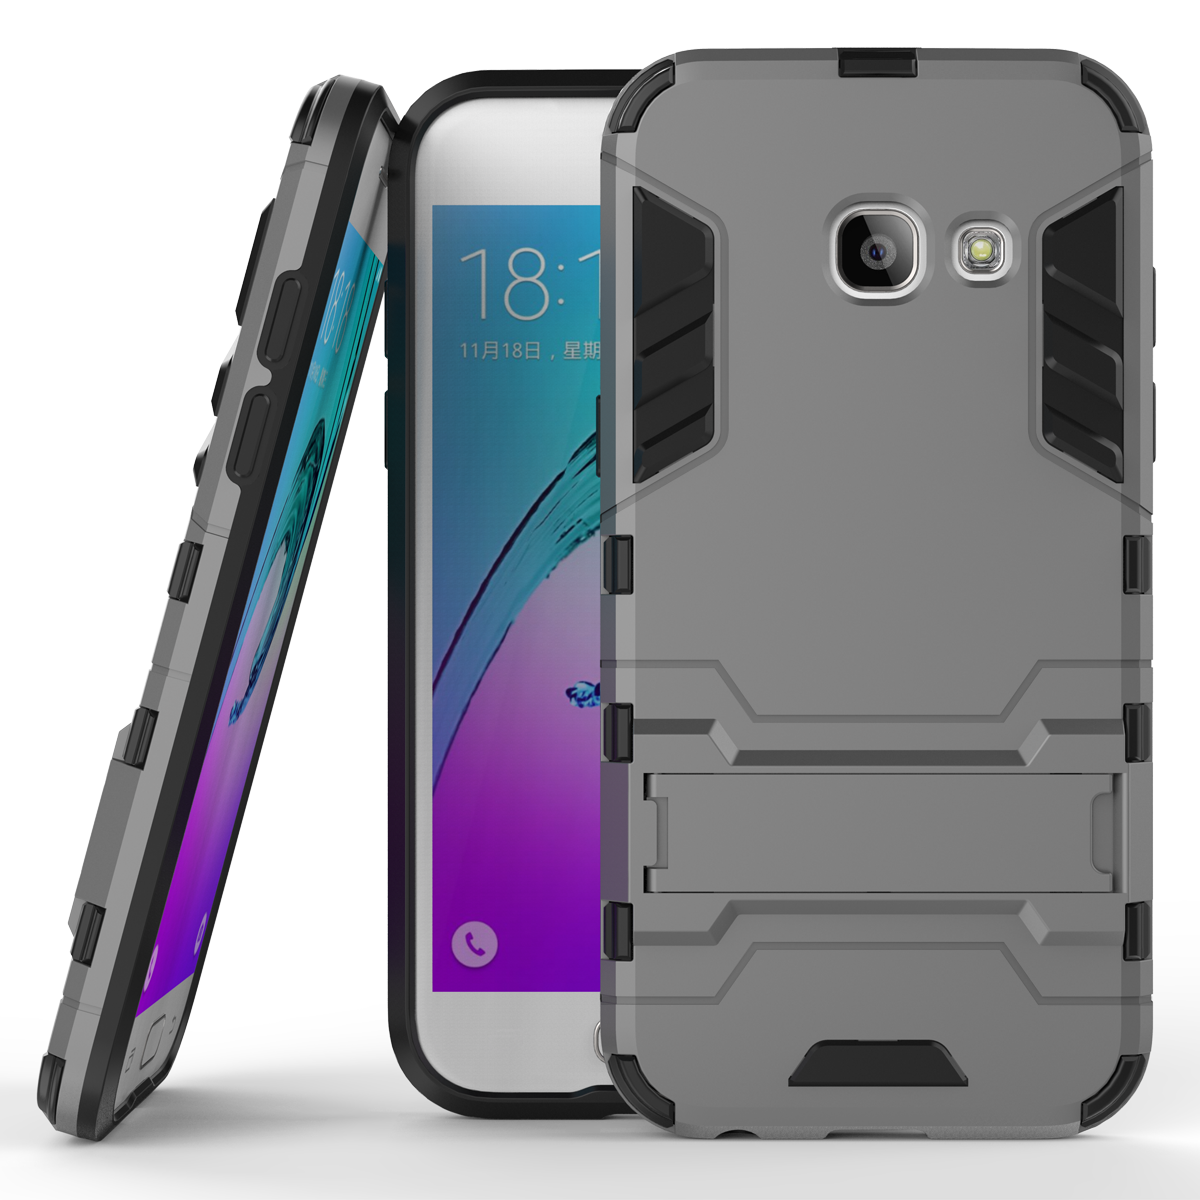 Or kickstand protective cover case for samsung galaxy j3 2017 j3 emerge gray p201701181411103240